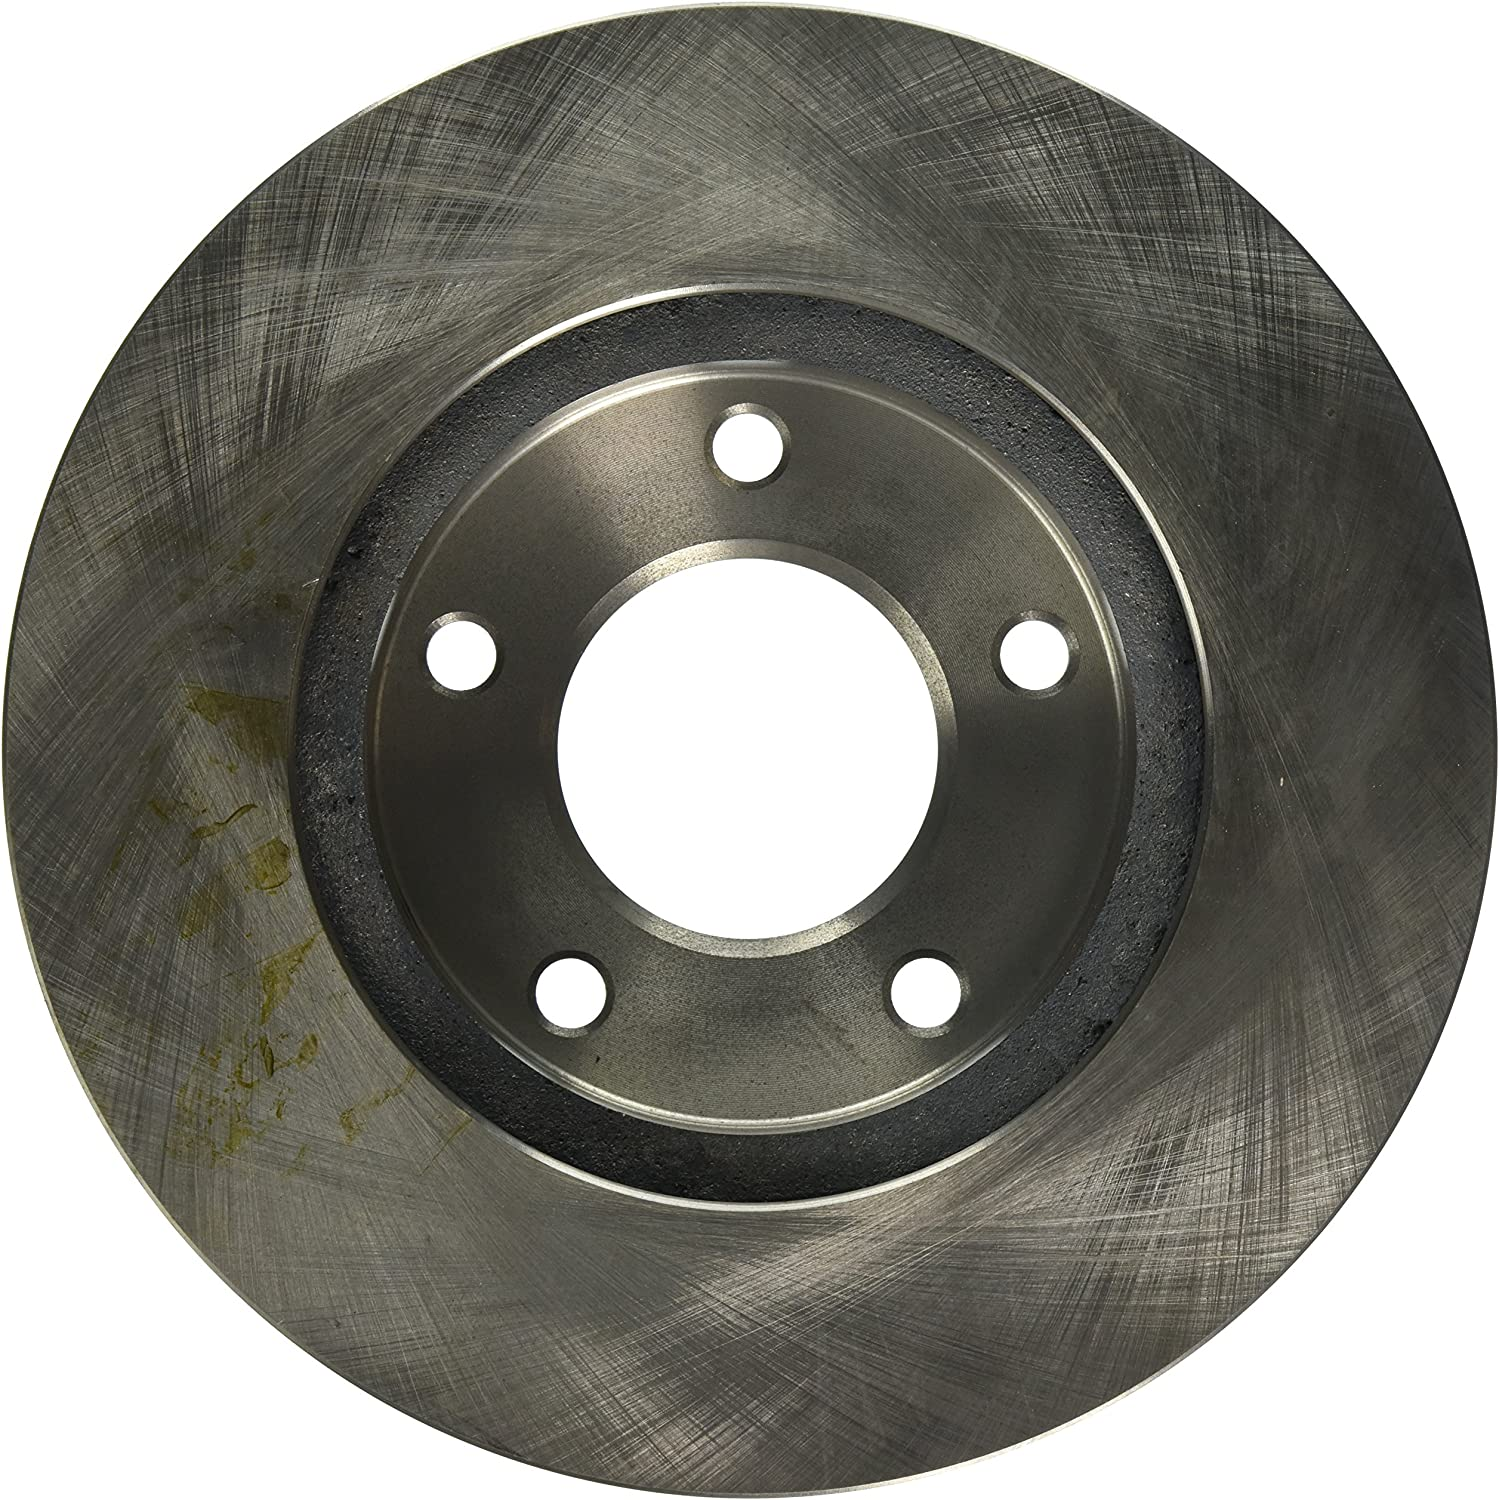 Centric Shipping included Parts 121.45045 We OFFer at cheap prices C-Tek Standard Rotor Brake